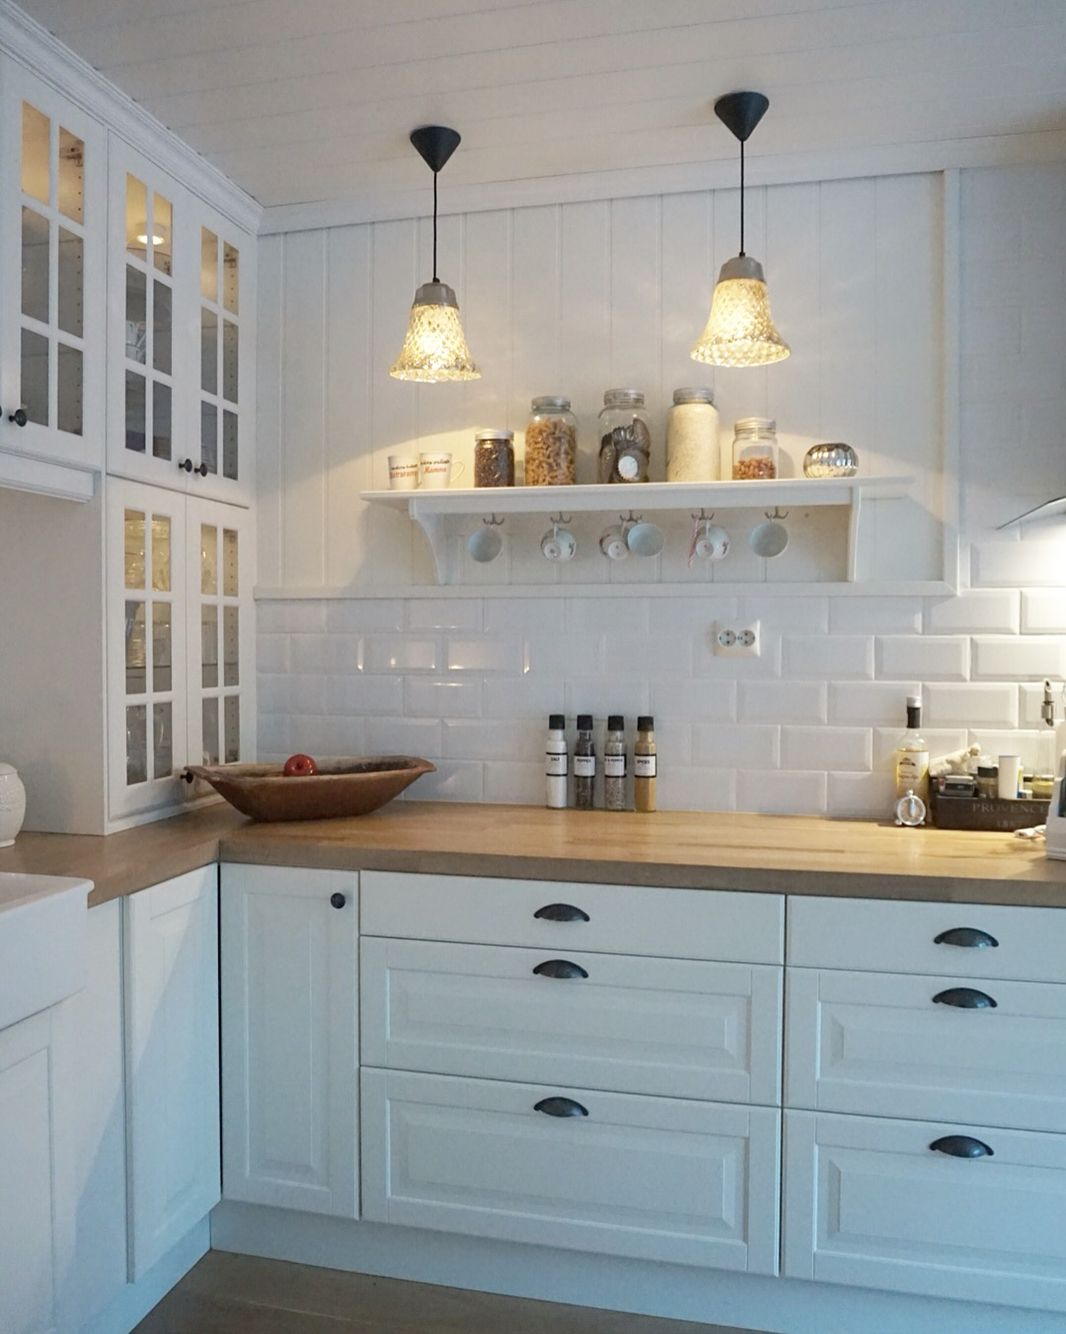 Ikea Offene Küche Detaljs By Behindabluedoor Margate Kitchen In 2019 Kitchen